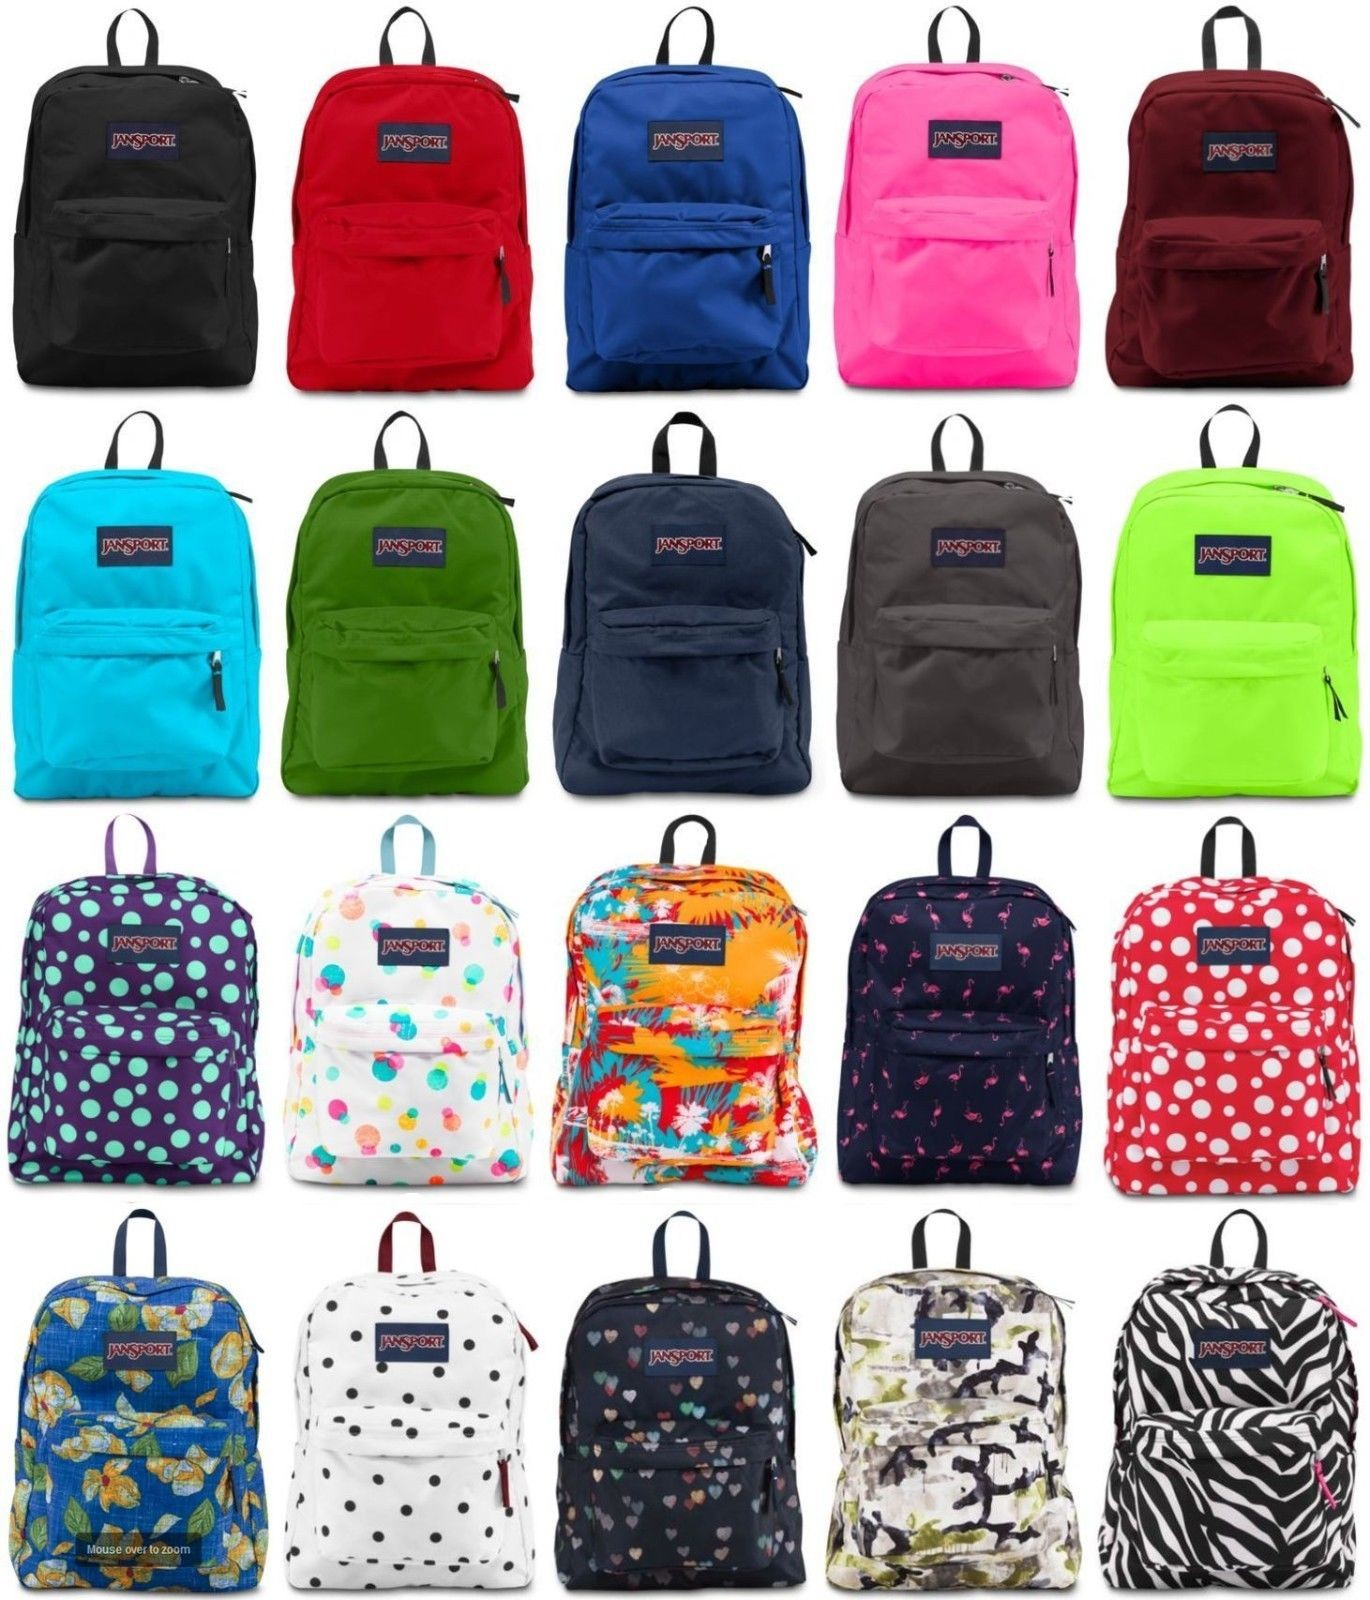 Colorful Jansport Backpacks A2YckDXb